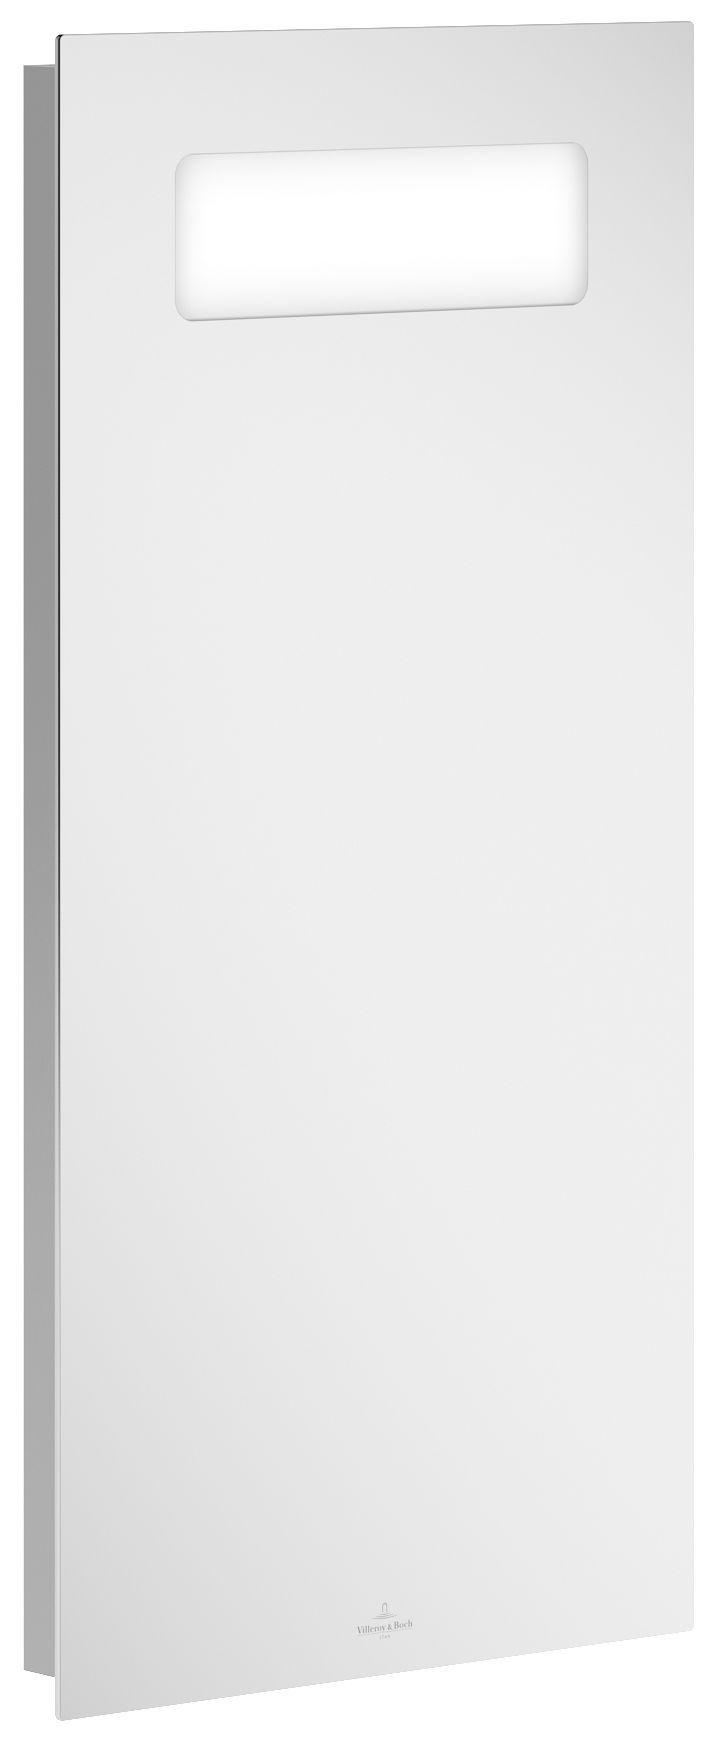 Villeroy & Boch More To See 14 Spiegel mit LED-Beleuchtung B:370xH:750xT:470 mm A4293700